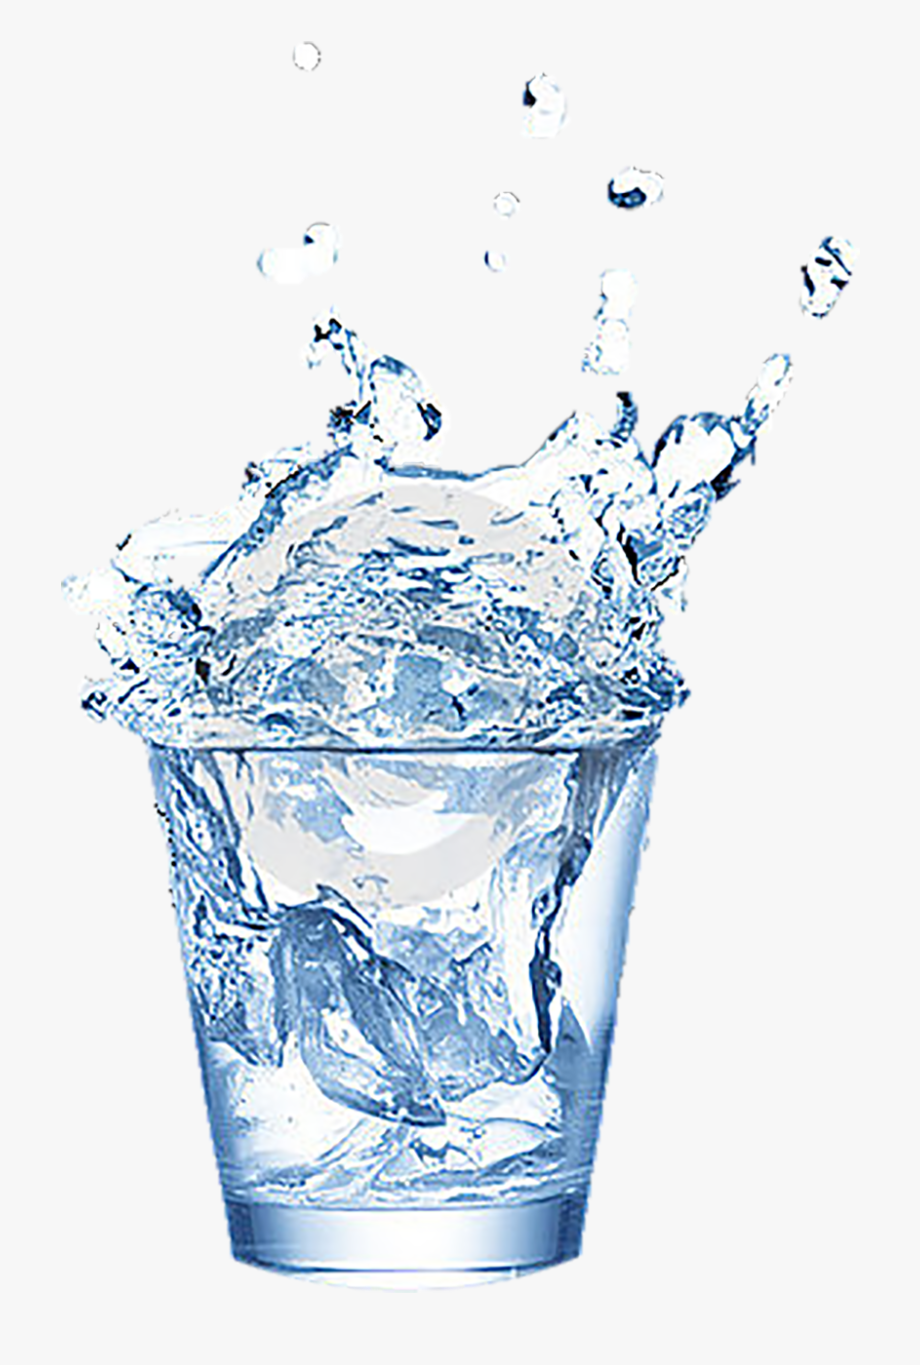 Download And Share Drink Water Png Drinking Water In Glass Png Cartoon Seach More Similar Free Transparent Cliparts Cartton Drinking Water Drinking Drinks